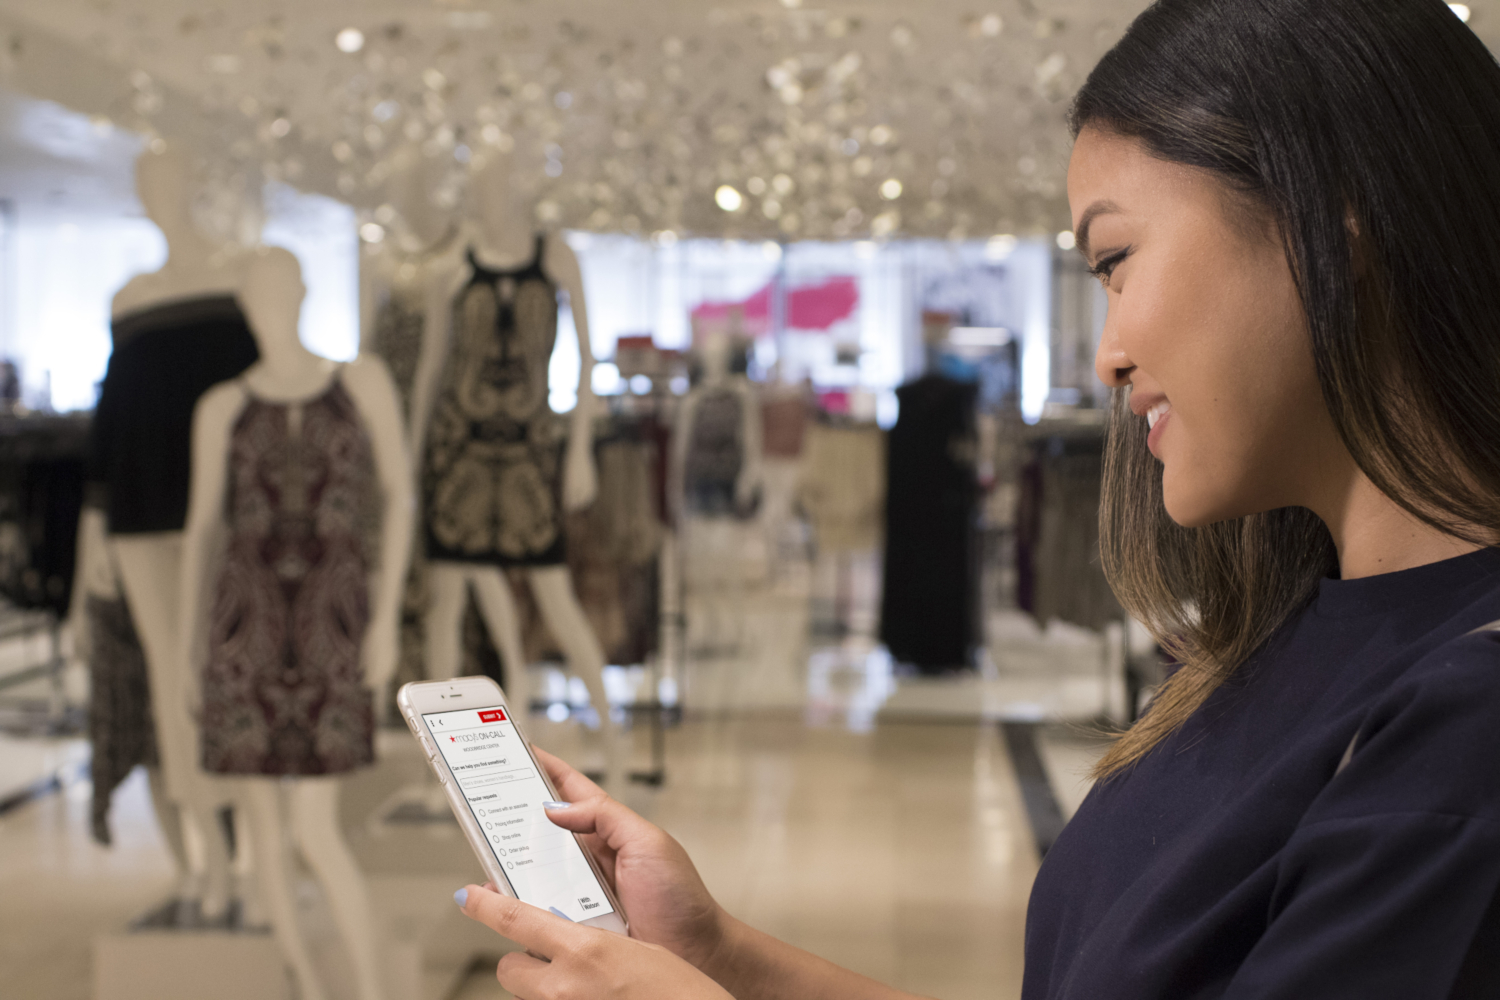 Macy's On Call, a mobile shopping companion powered by IBM Watson and Satisfi (credits: IBM / Flickr Creative Commons Attribution-NonCommercial-NoDerivs 2.0 Generic (CC BY-NC-ND 2.0))